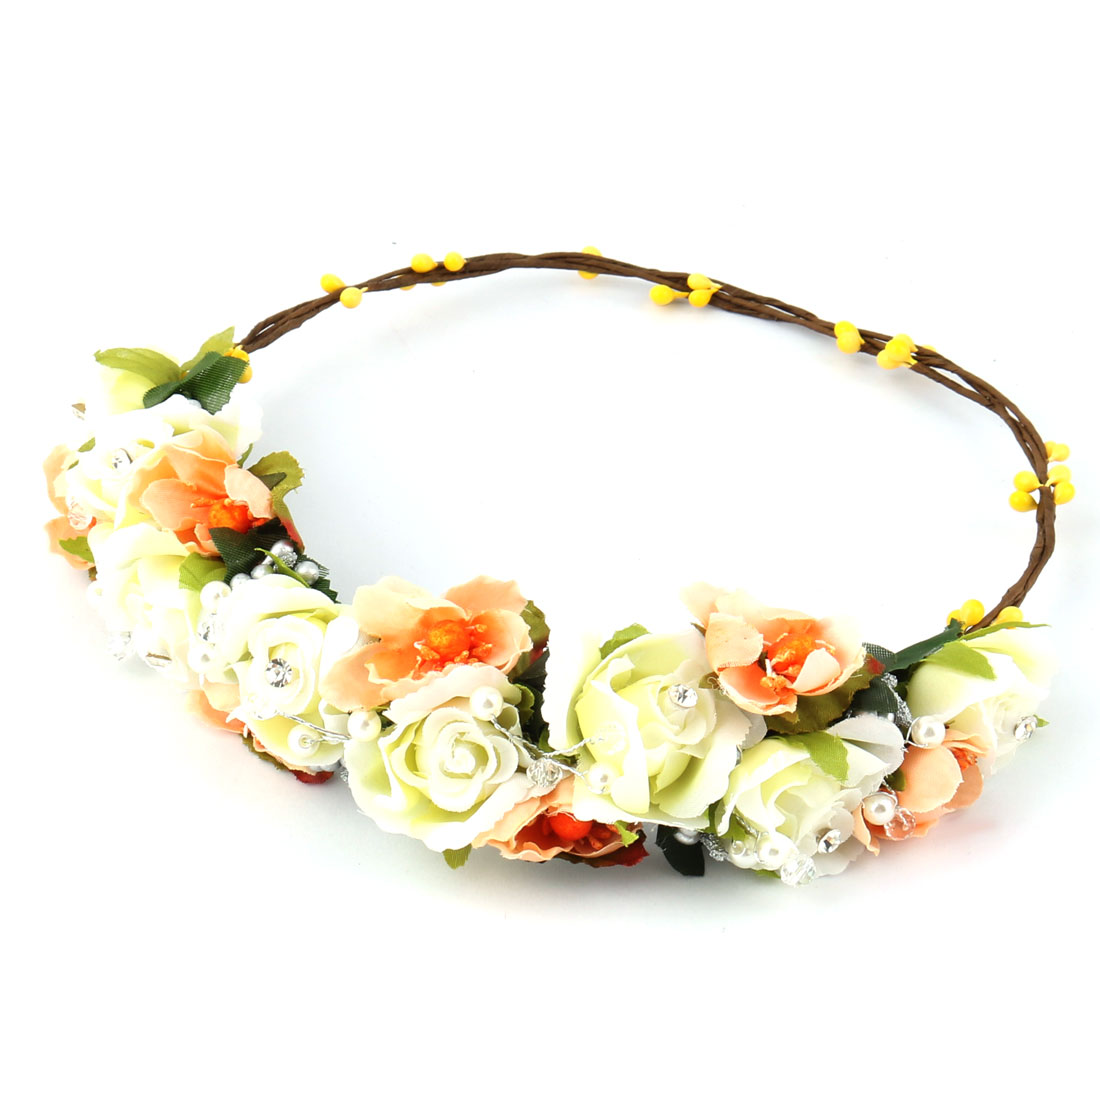 Garland Wedding Cloth Handmade Floral Crown Hair Wreath Headband Orange White